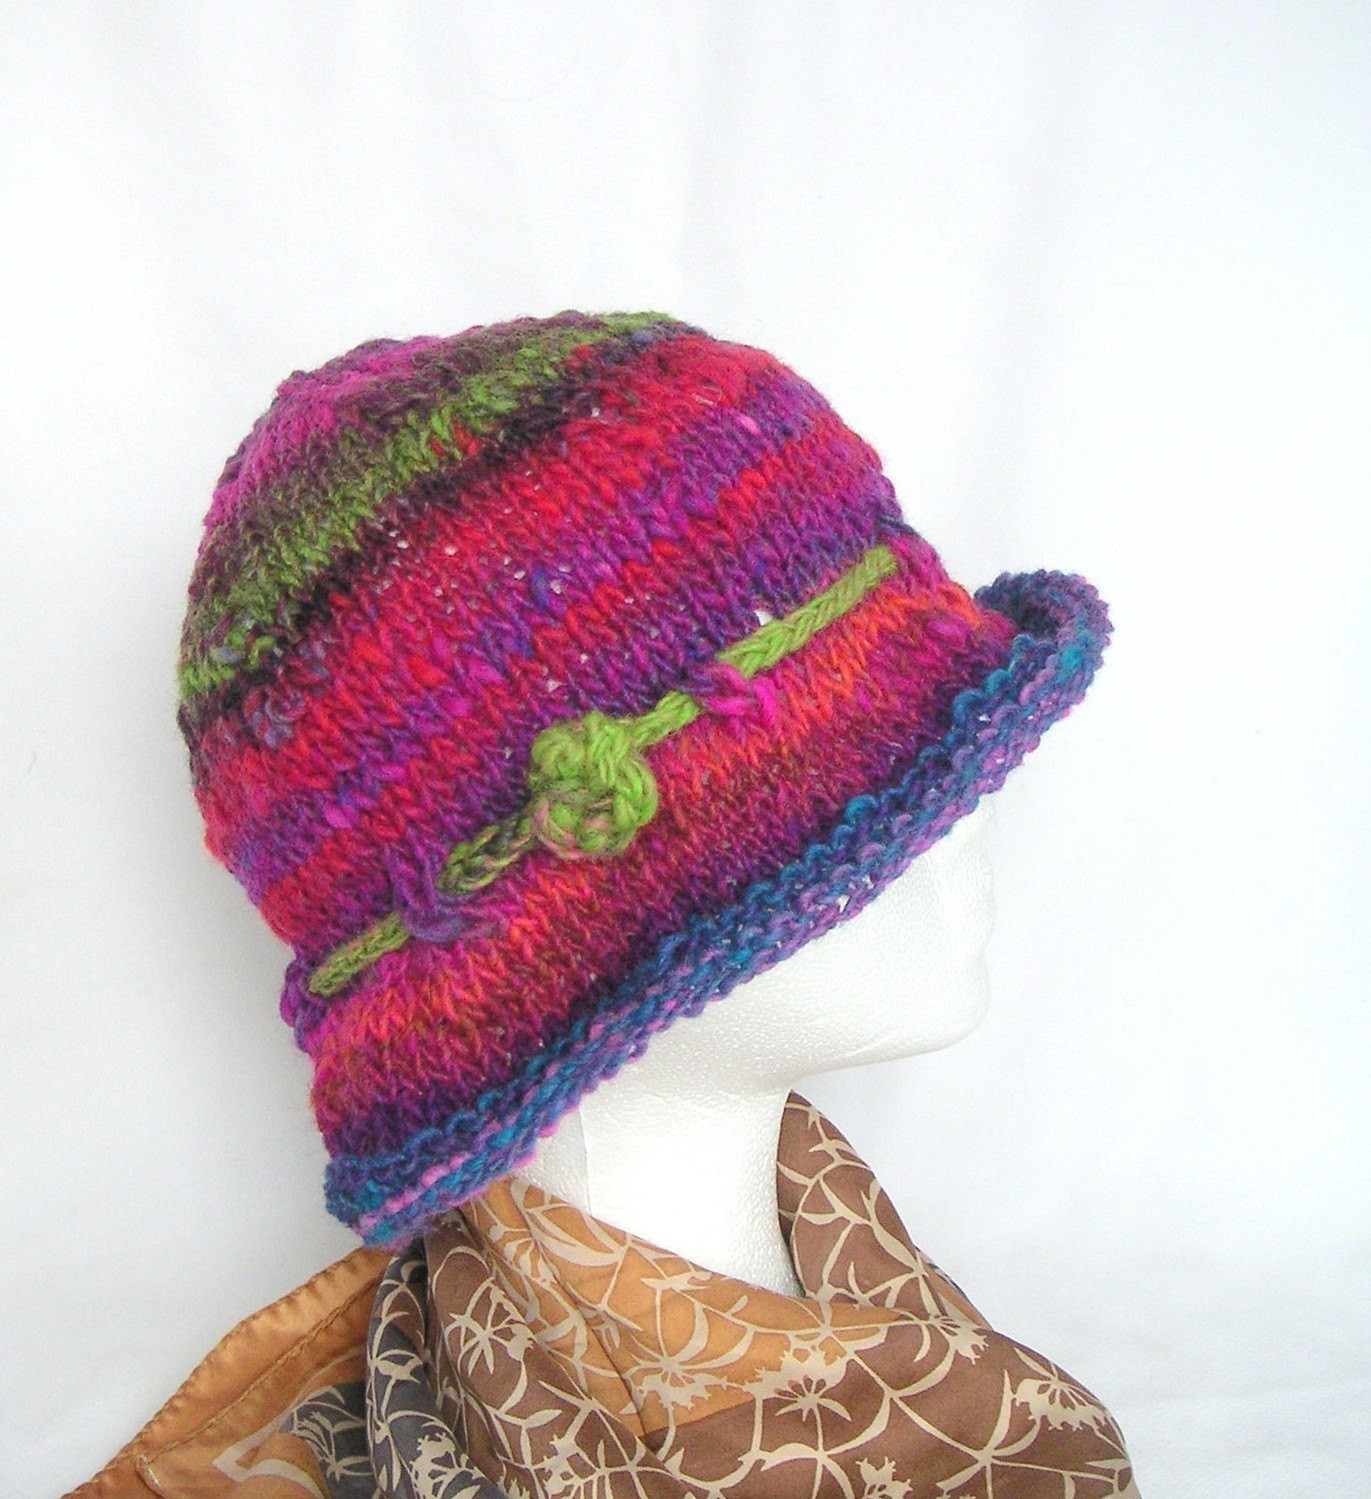 Inspirational Easy Hat Knitting Patterns Pattern Collections Easy Knitting for Beginners Of Charming 43 Images Easy Knitting for Beginners